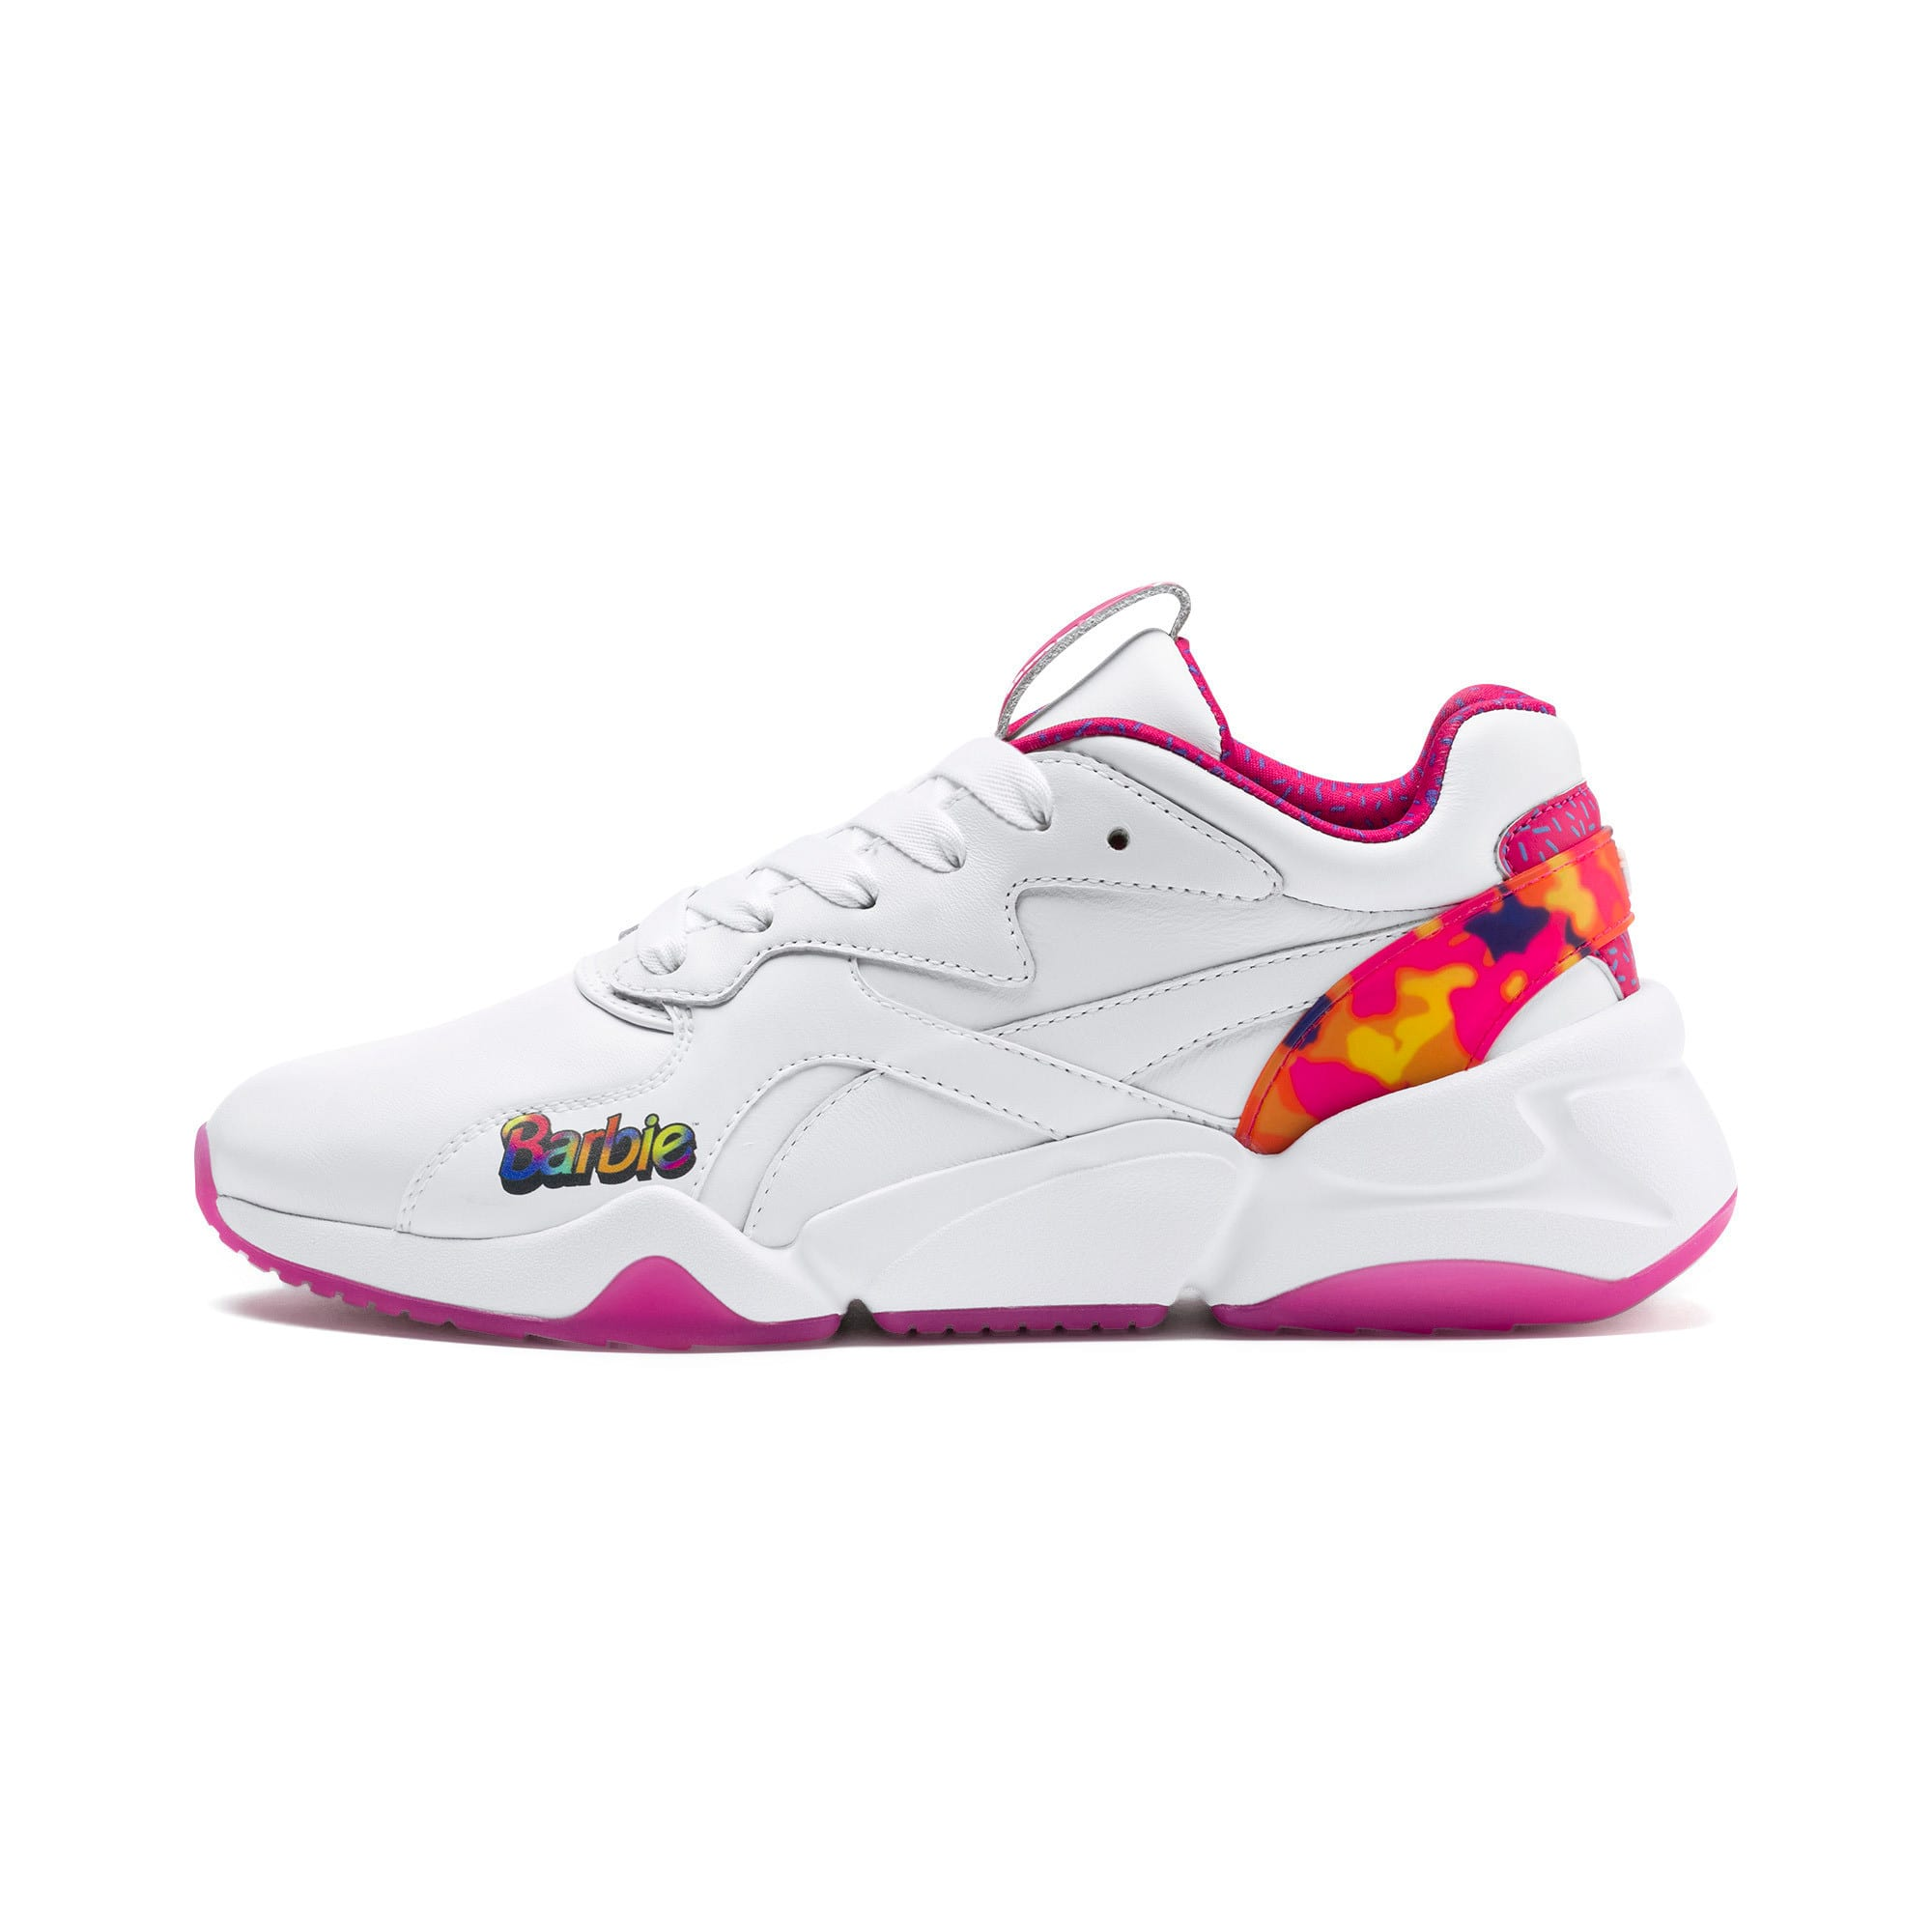 Thumbnail 1 of Nova x Barbie Flash Women's Sneakers, Puma White-CABARET, medium